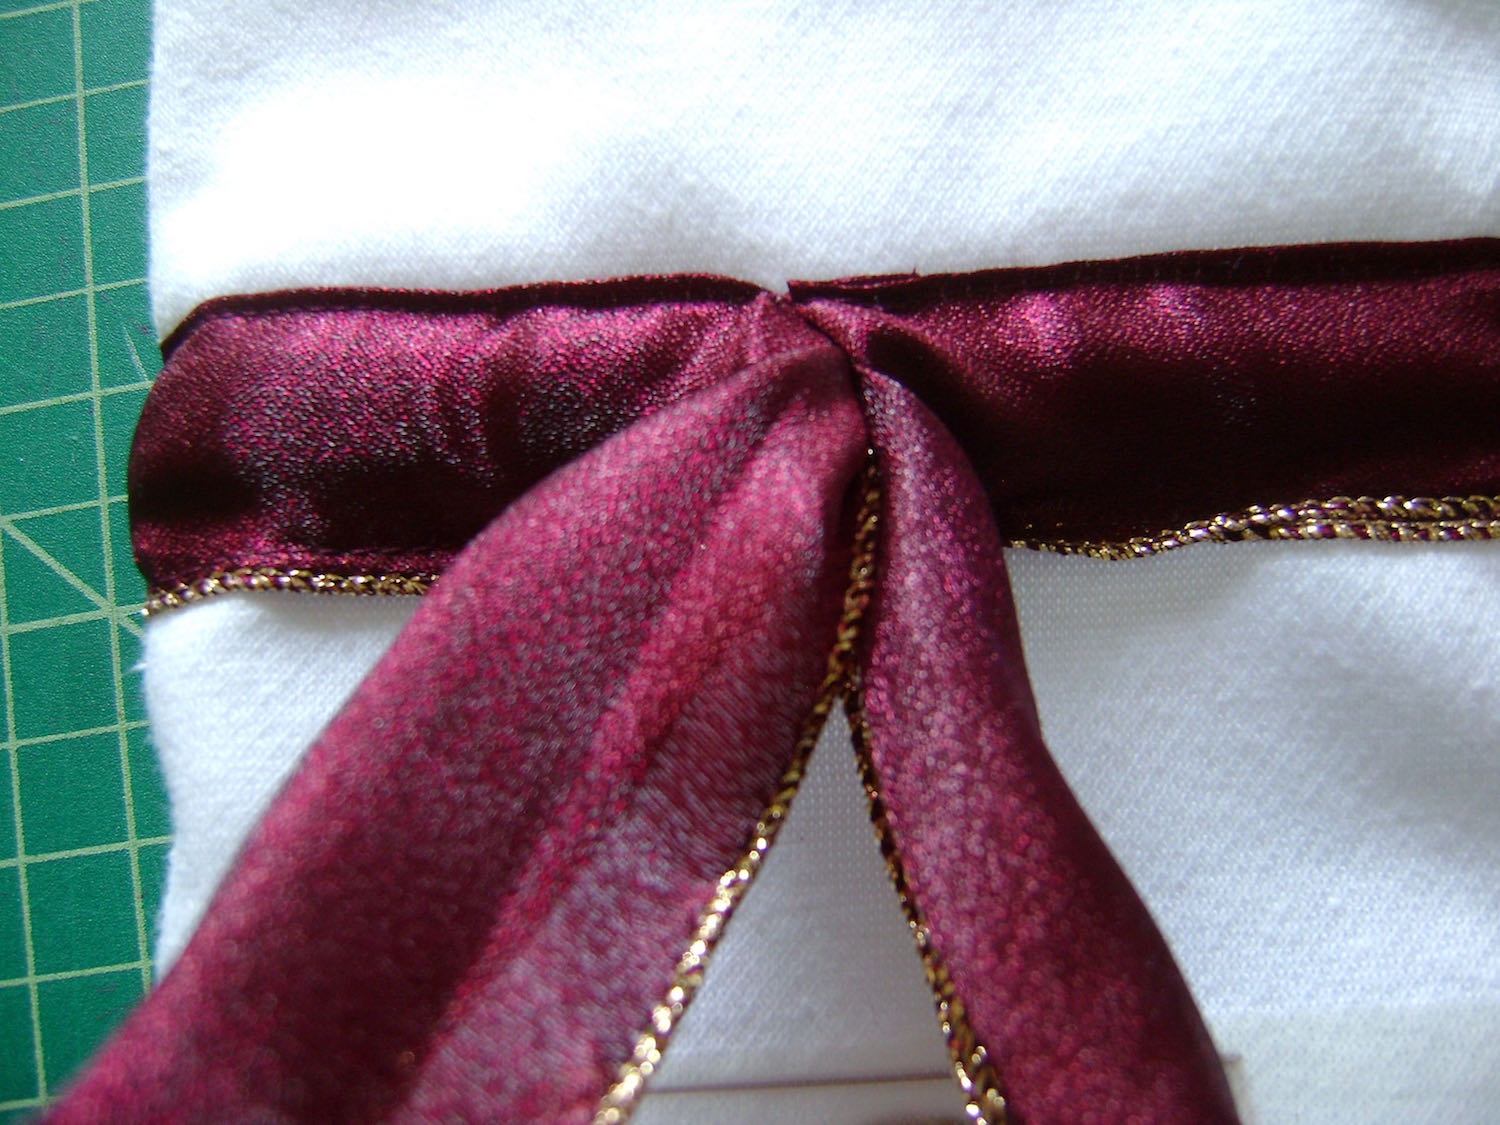 step 12 - Bring the safety pin out the center front. Put the bottle in the bag and tie the two ribbons together then into a bow. Cut off excess ribbon.